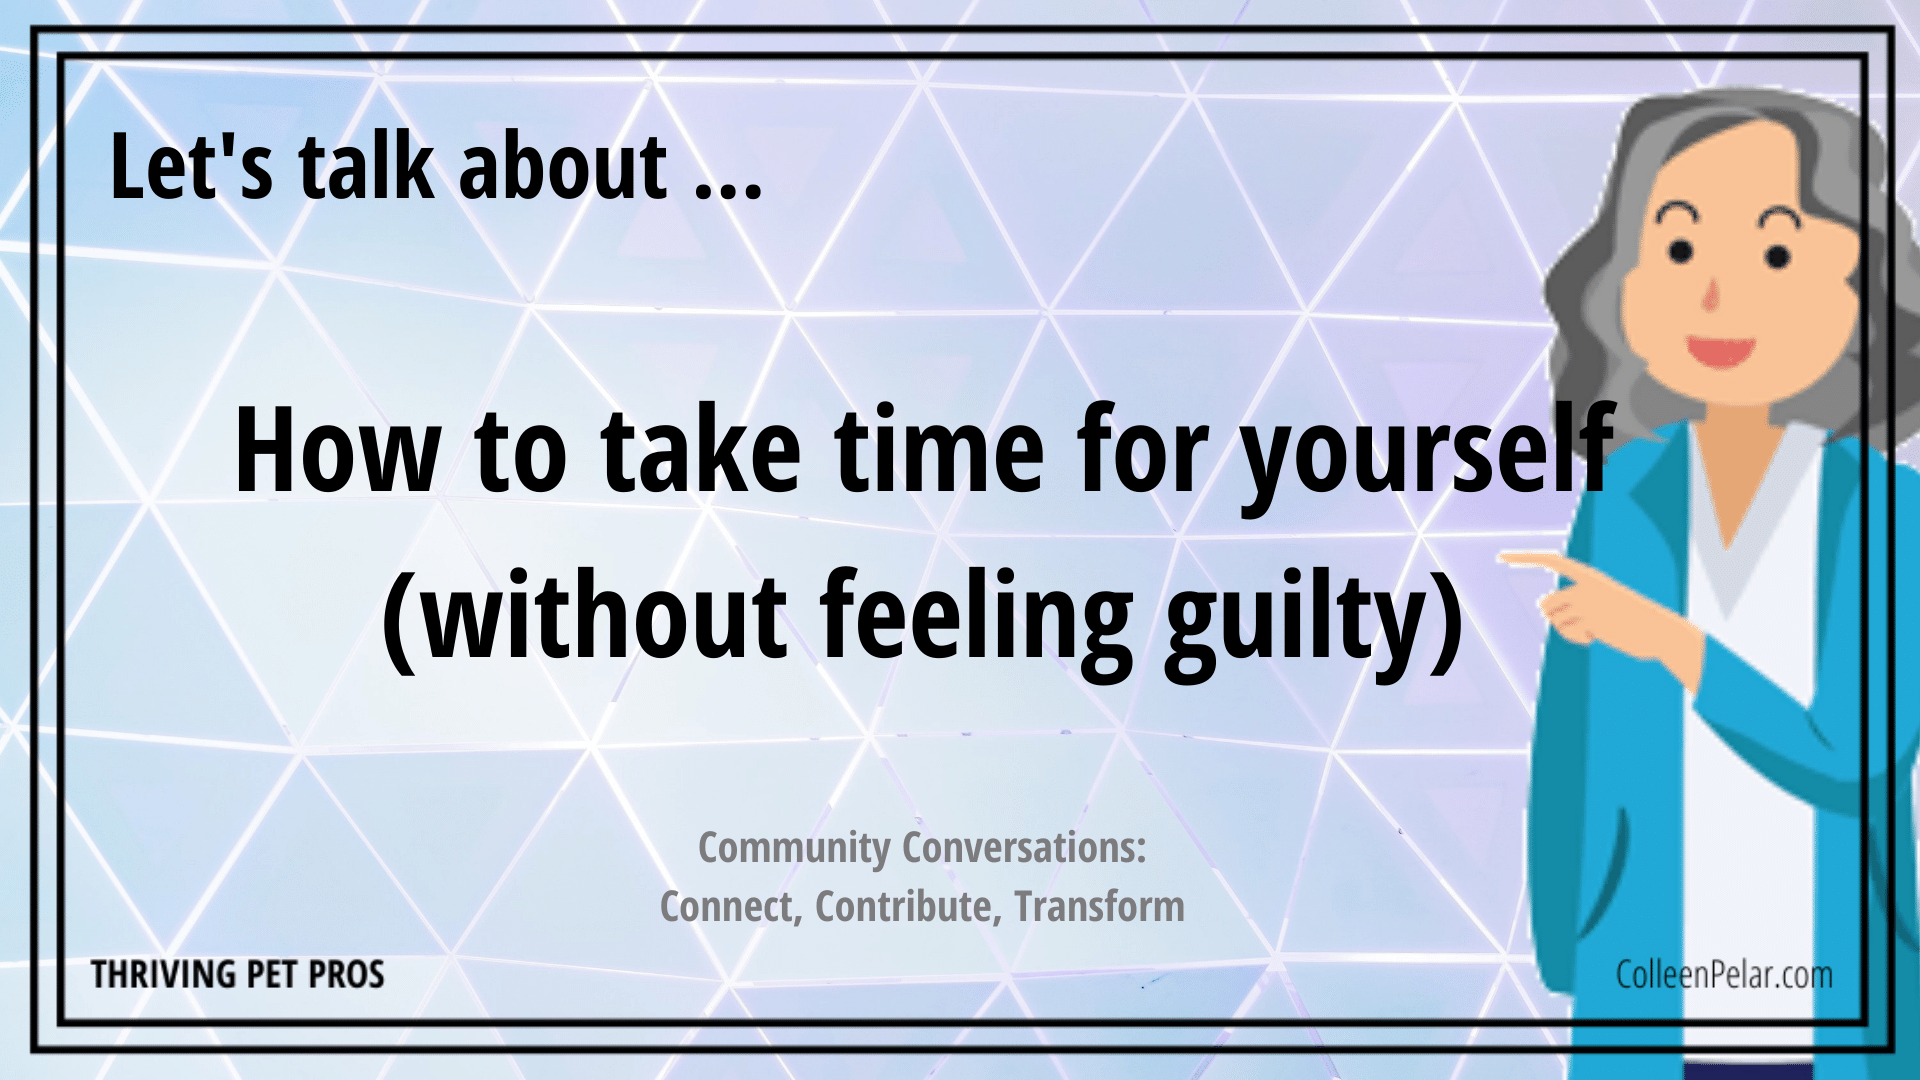 Community Conversation: How to take time for yourself without feeling guilty